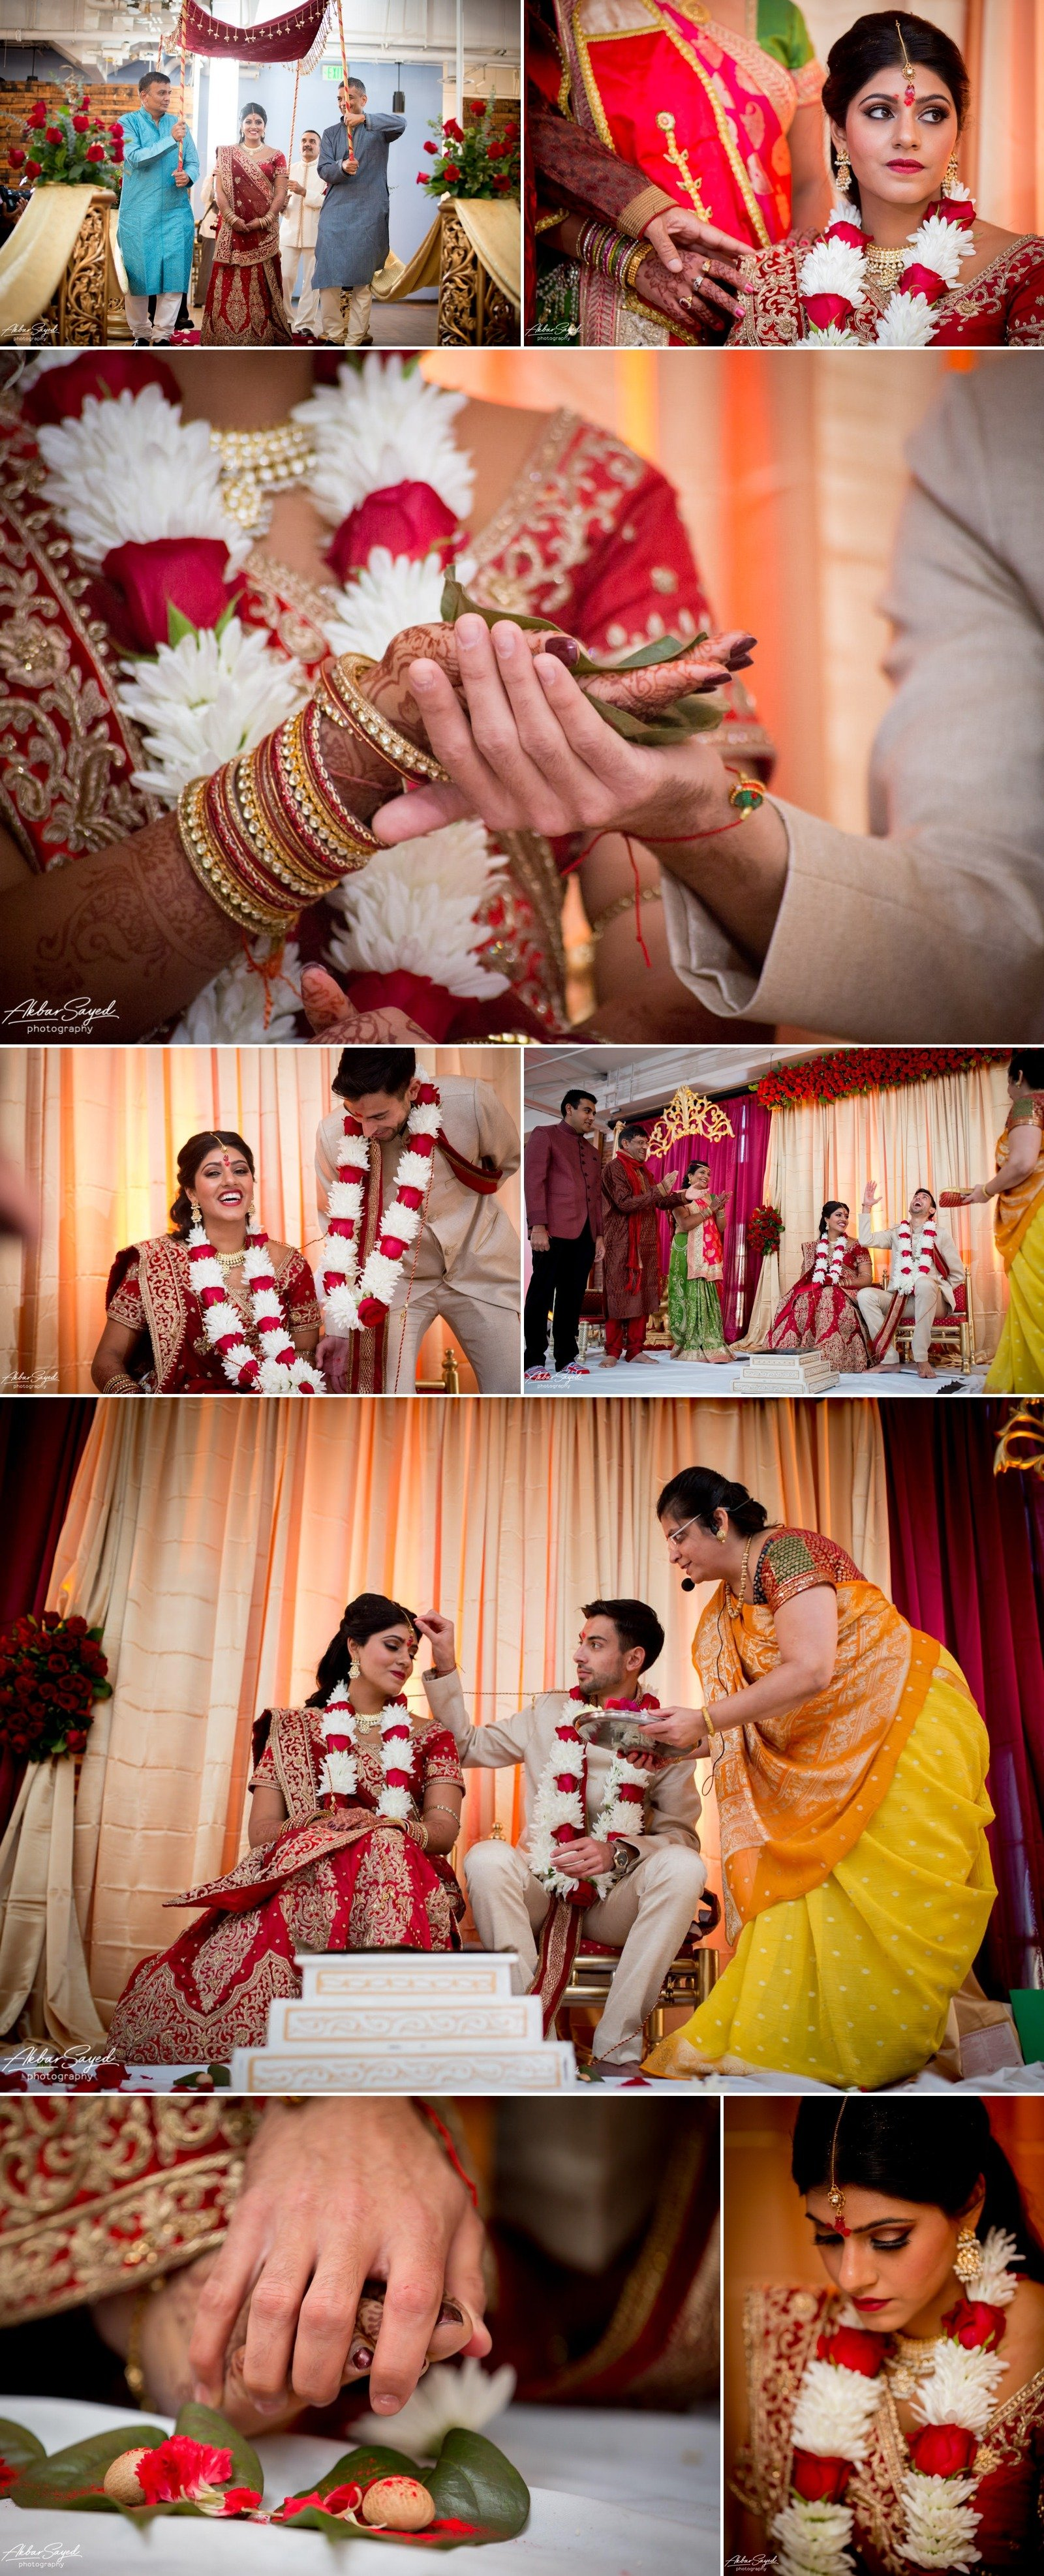 A photo collage of a Indian Bride and Iranian groom during their Hindu wedding ceremony at the American Visionary Art Museum in Baltimore, Maryland.